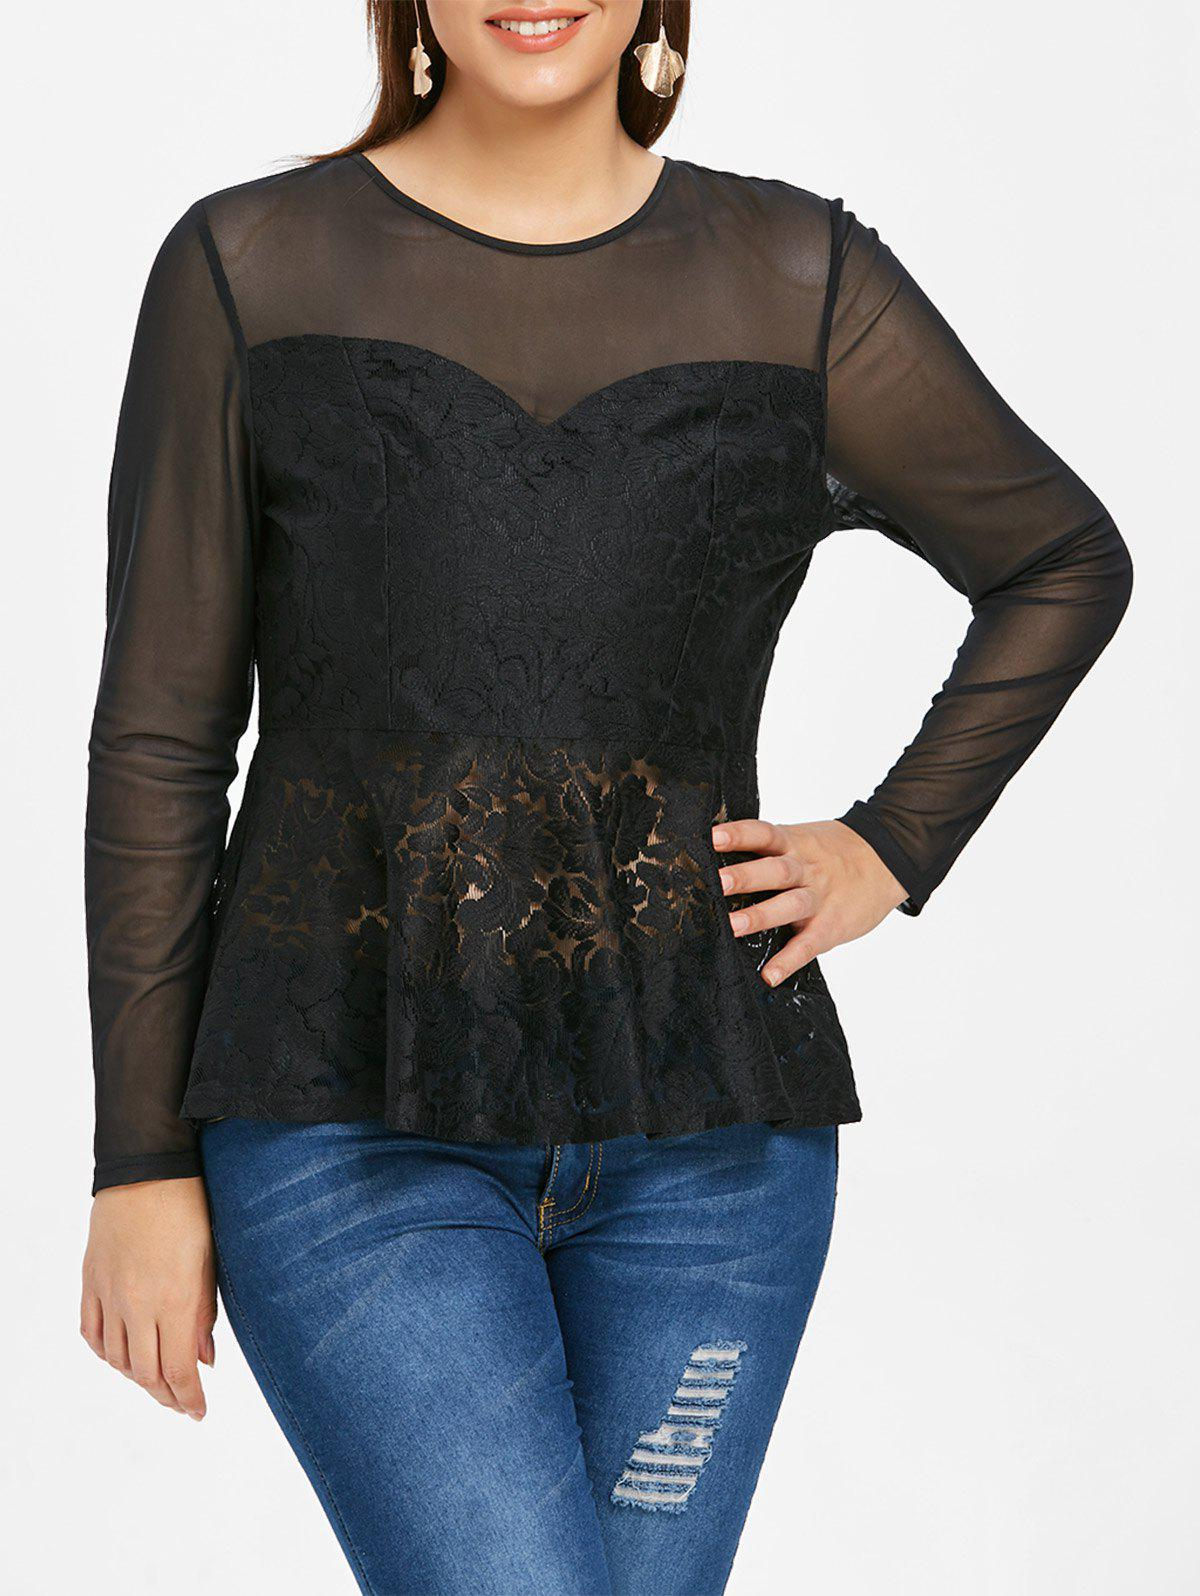 Plus Size Mesh and Lace Panel T-shirt - BLACK 4X